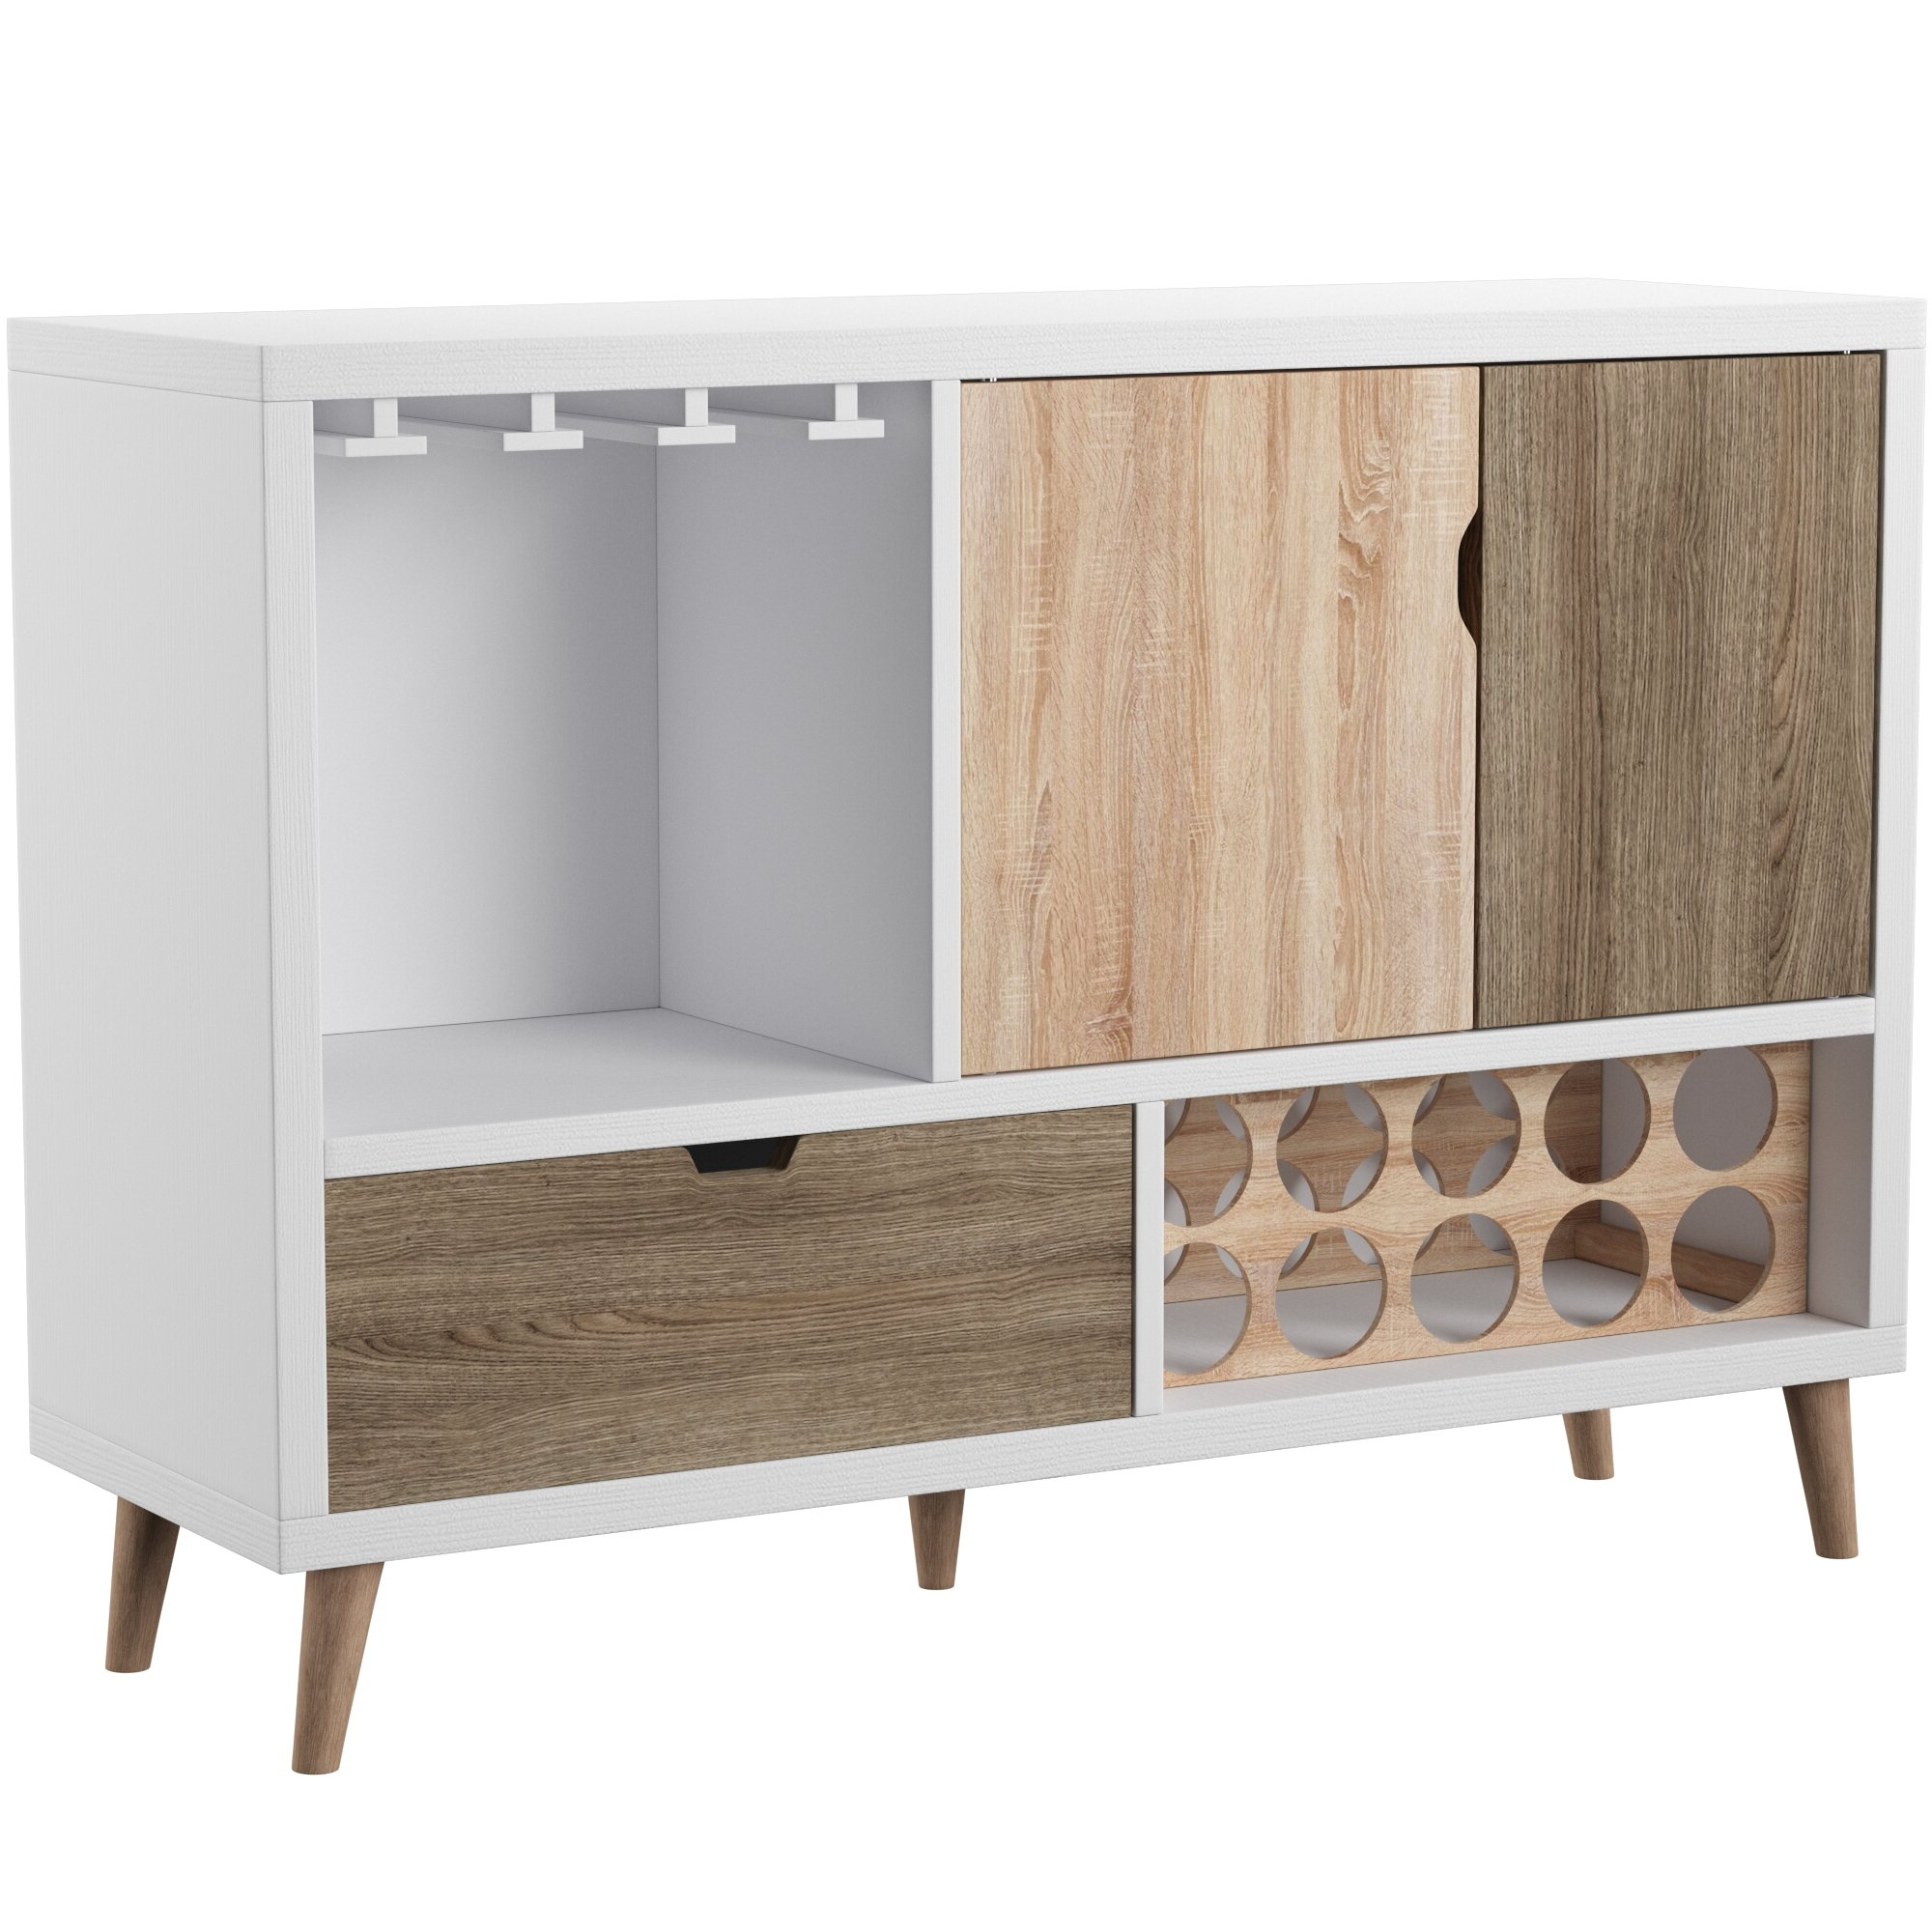 Allmodern With Regard To Well Known Longley Sideboards (Gallery 11 of 20)